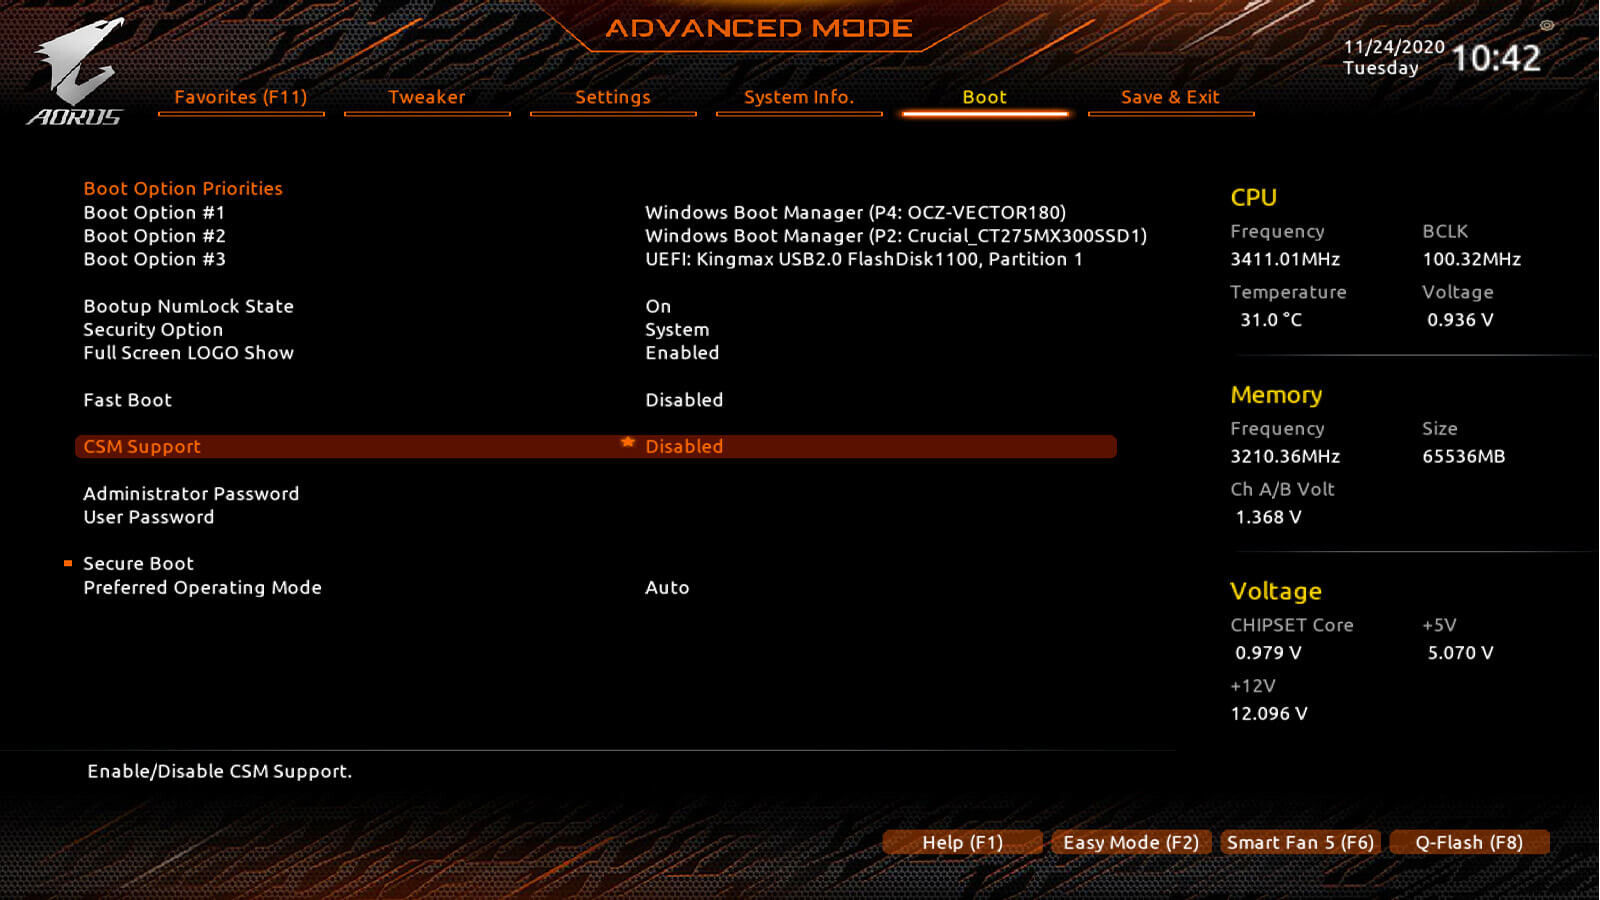 GIGABYTE AMD BIOS